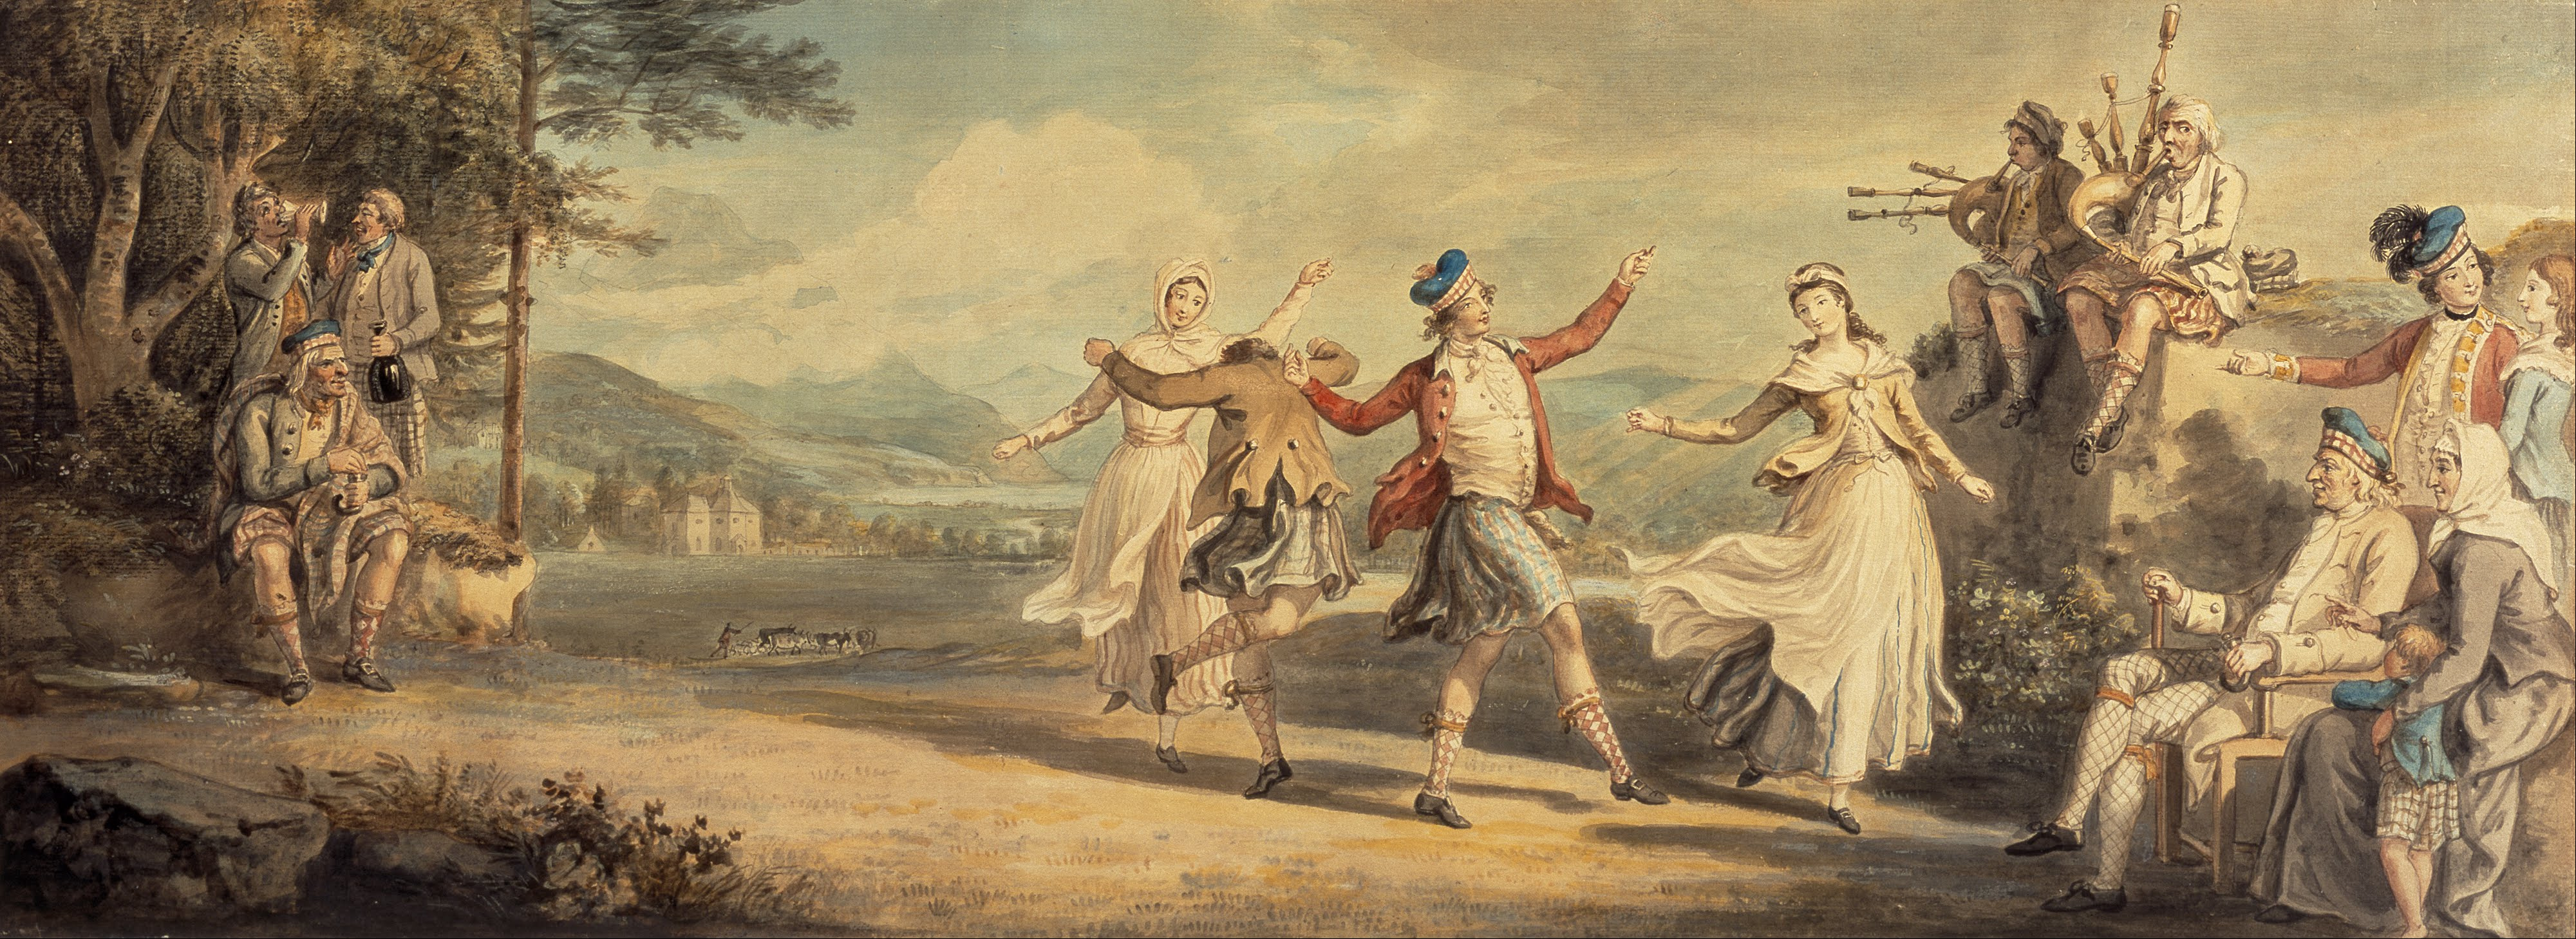 david_allan_a_highland_dance_google_art_project.jpg